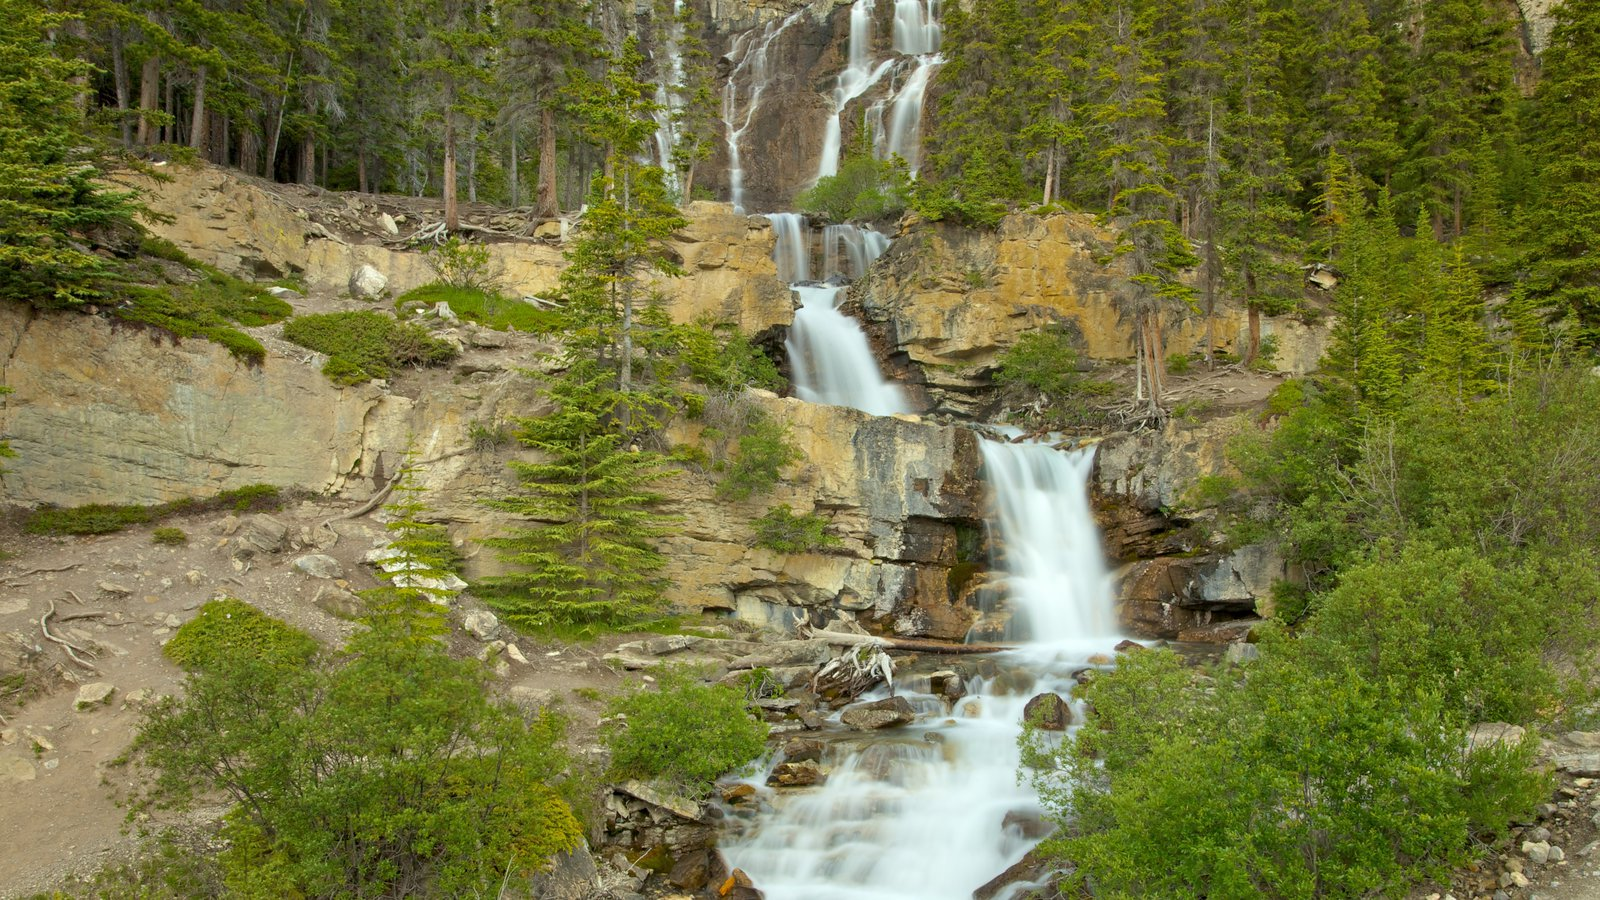 Tangle Falls showing landscape views, a cascade and forest scenes